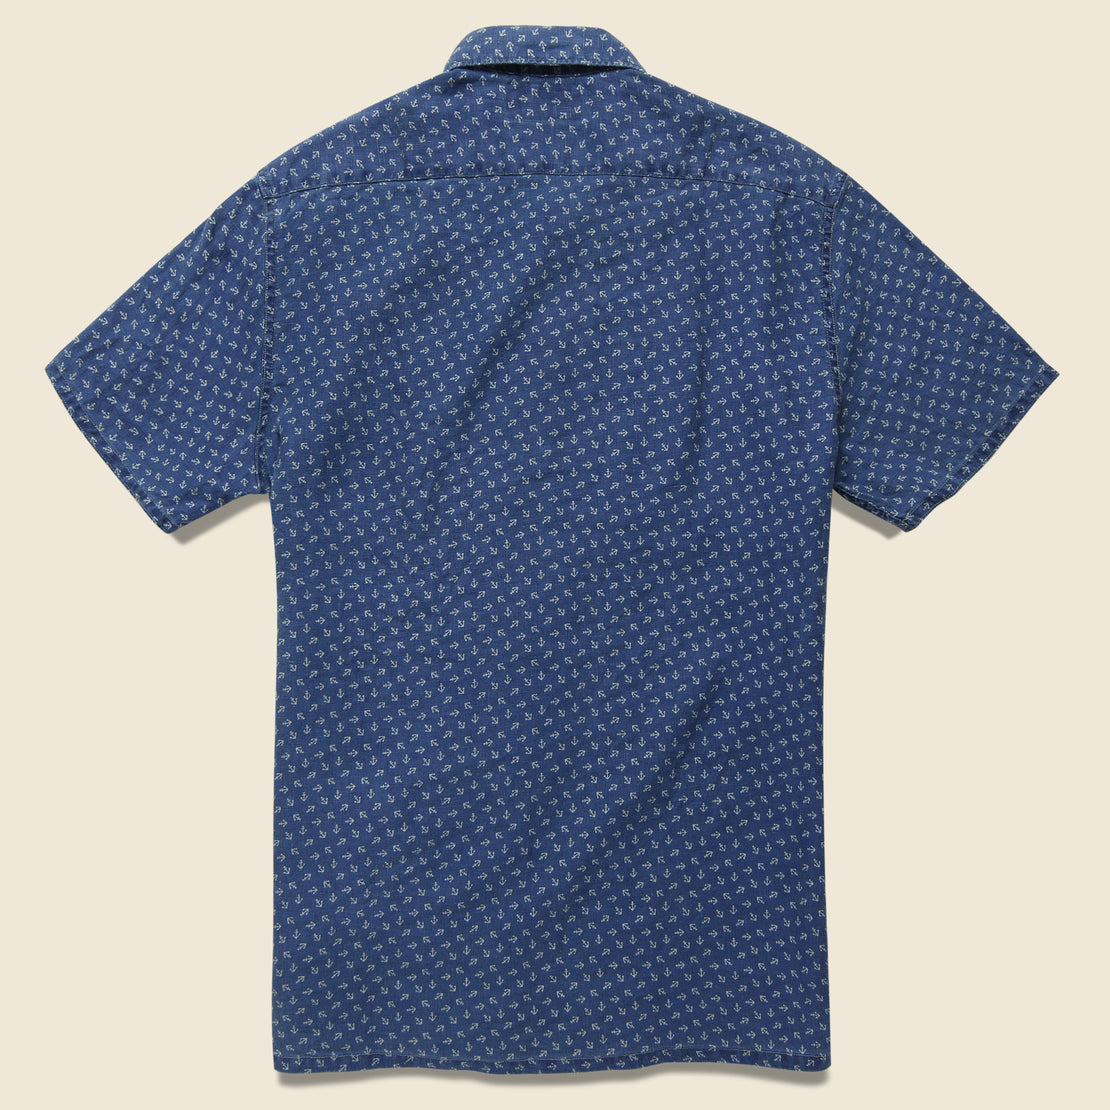 Anchor-Print Linen Camp Shirt - Blue/Cream